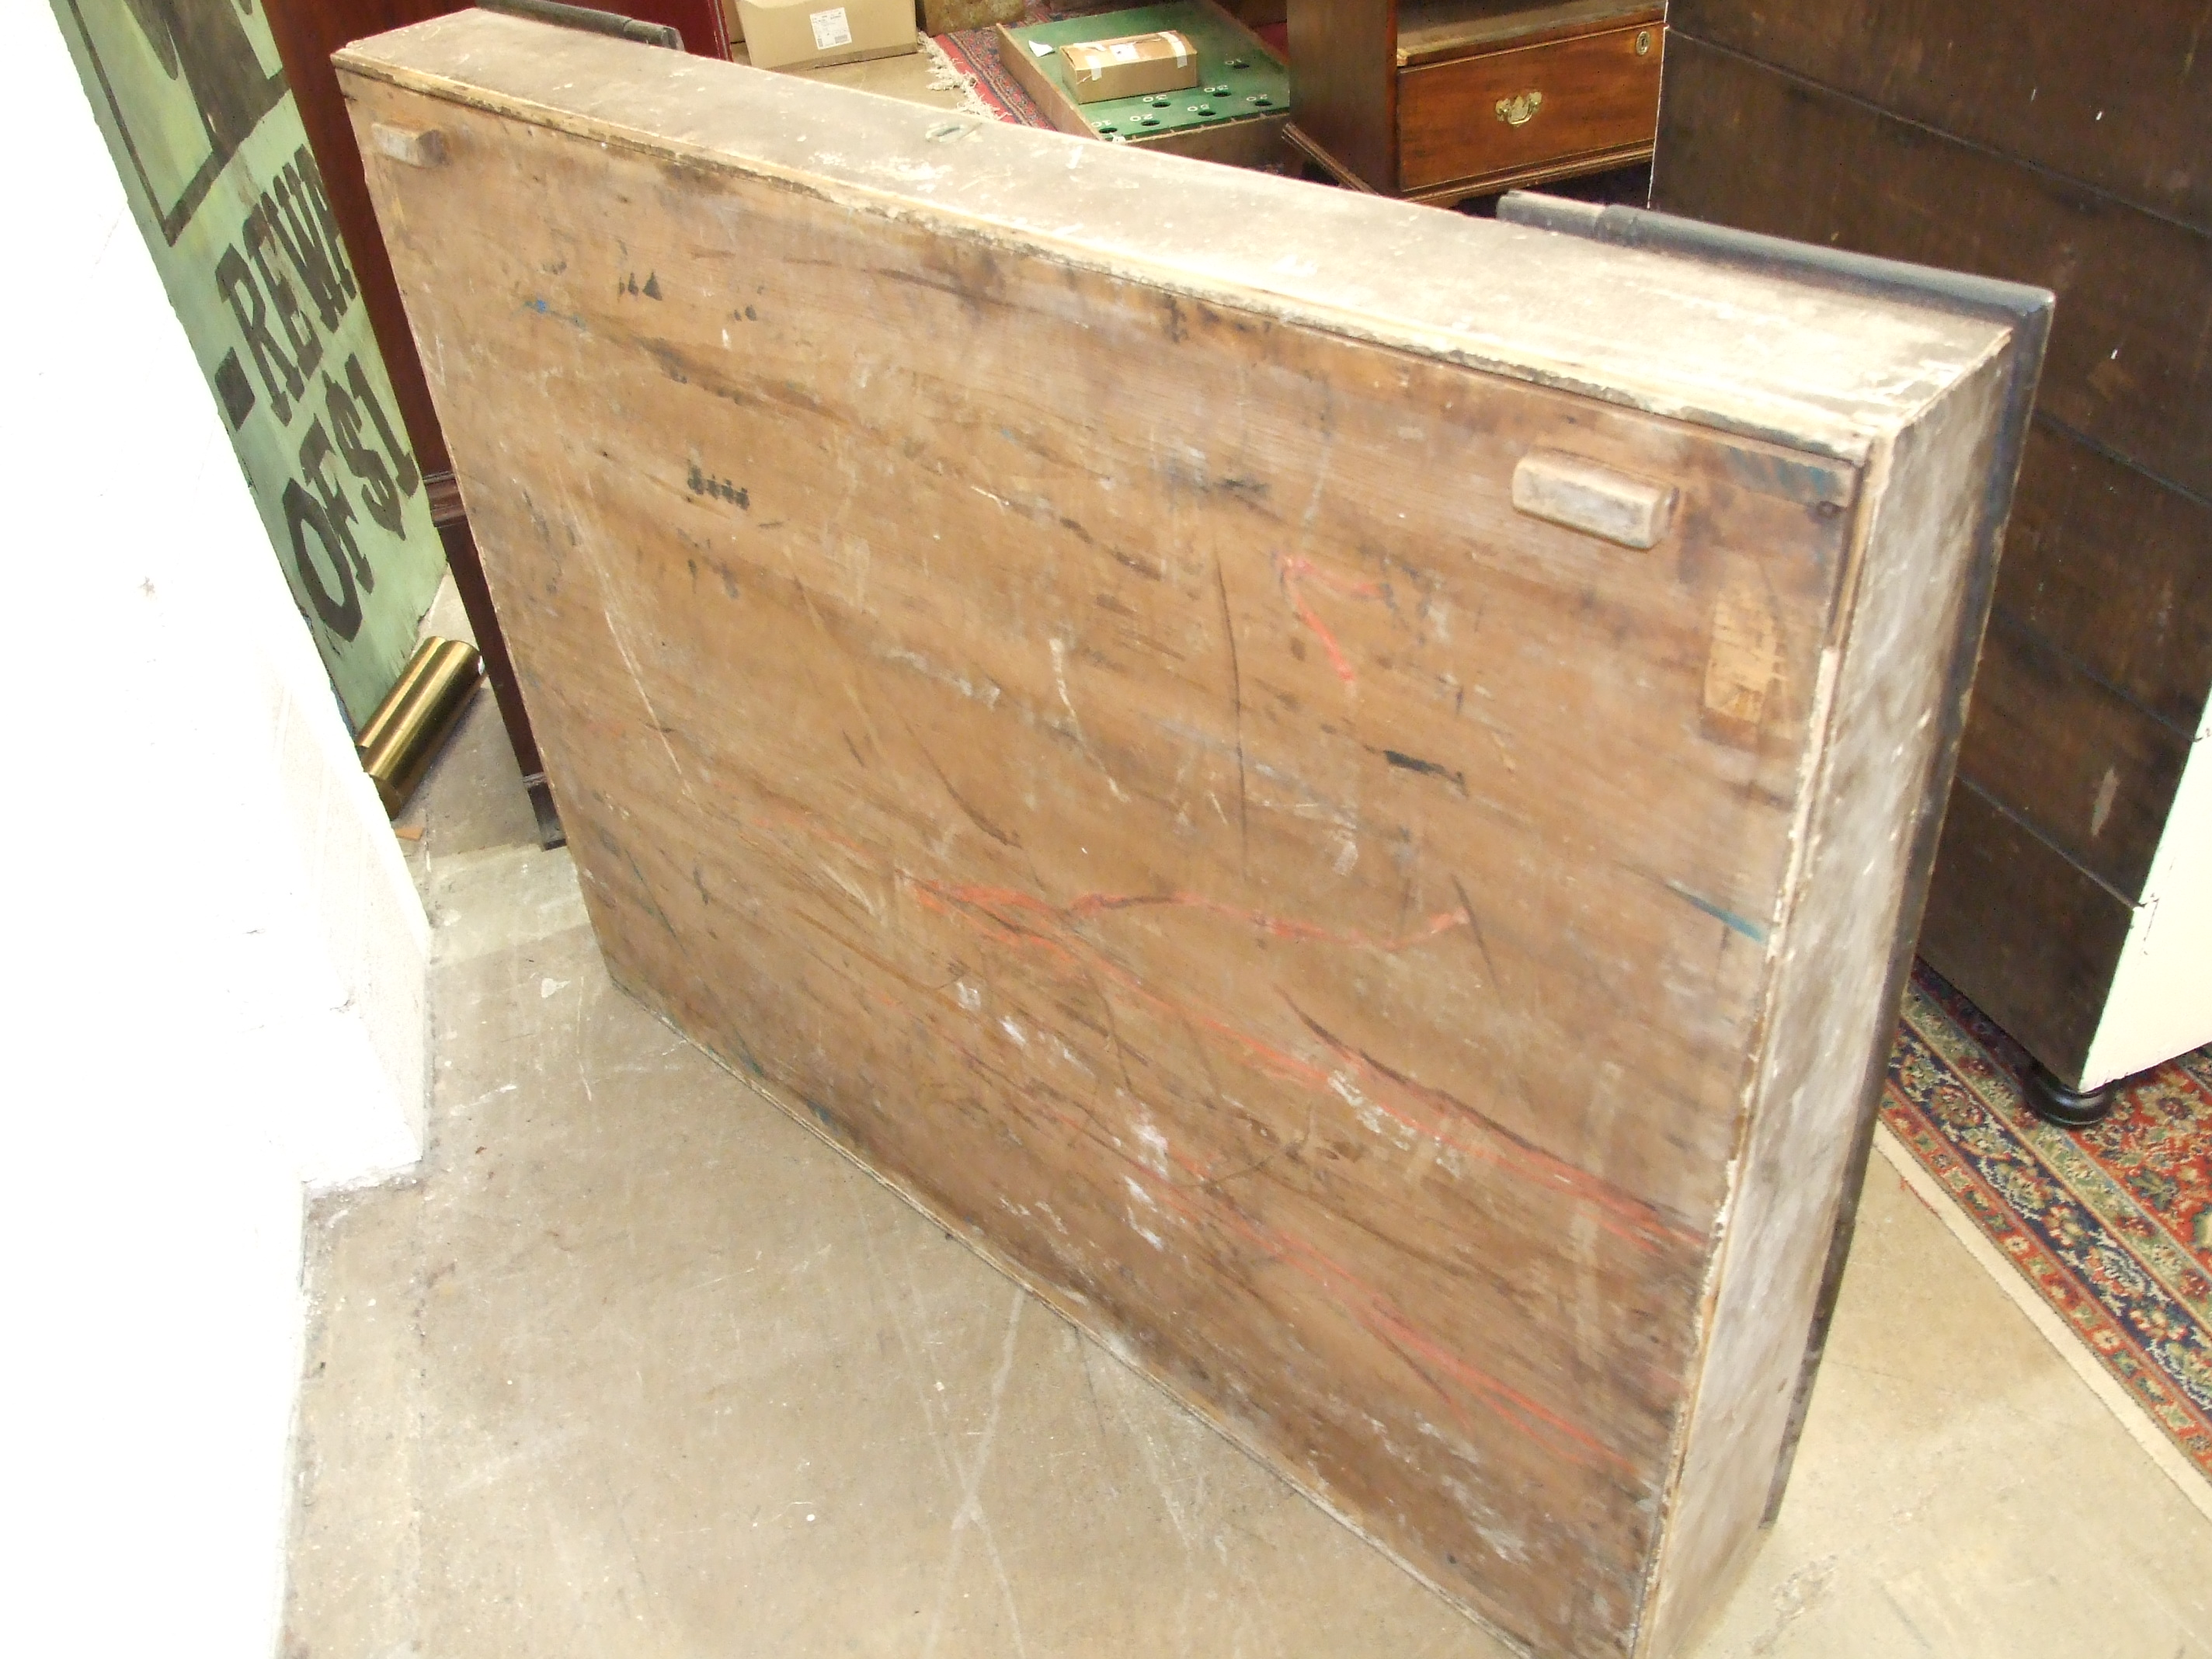 A 19th century grained wood and oak desk top, the slightly-sloped top with central hinged flap, - Image 3 of 5